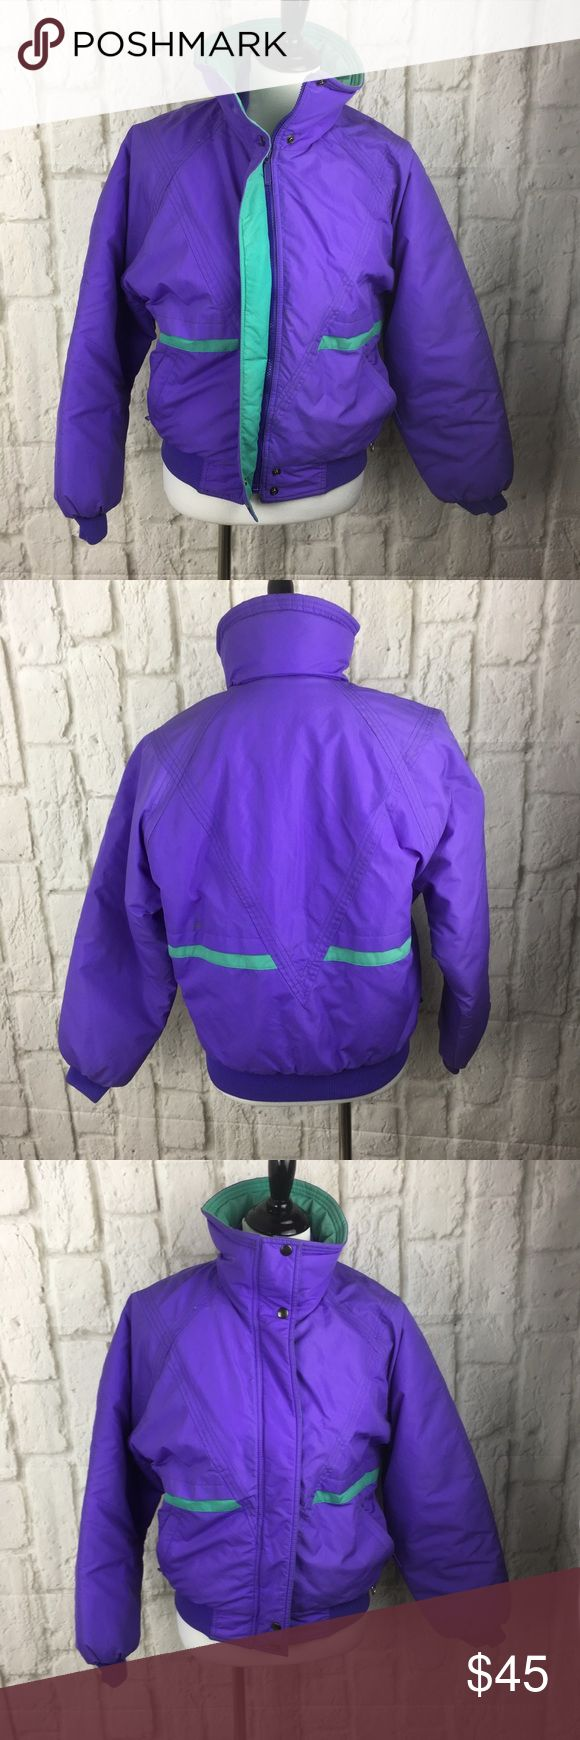 Liberty bell vintage ski jacket EUC Liberty bell purple and real ski jacket soooooi saved by the bell.....Miami vice gone ski school 😜 liberty bell Jackets & Coats Puffers